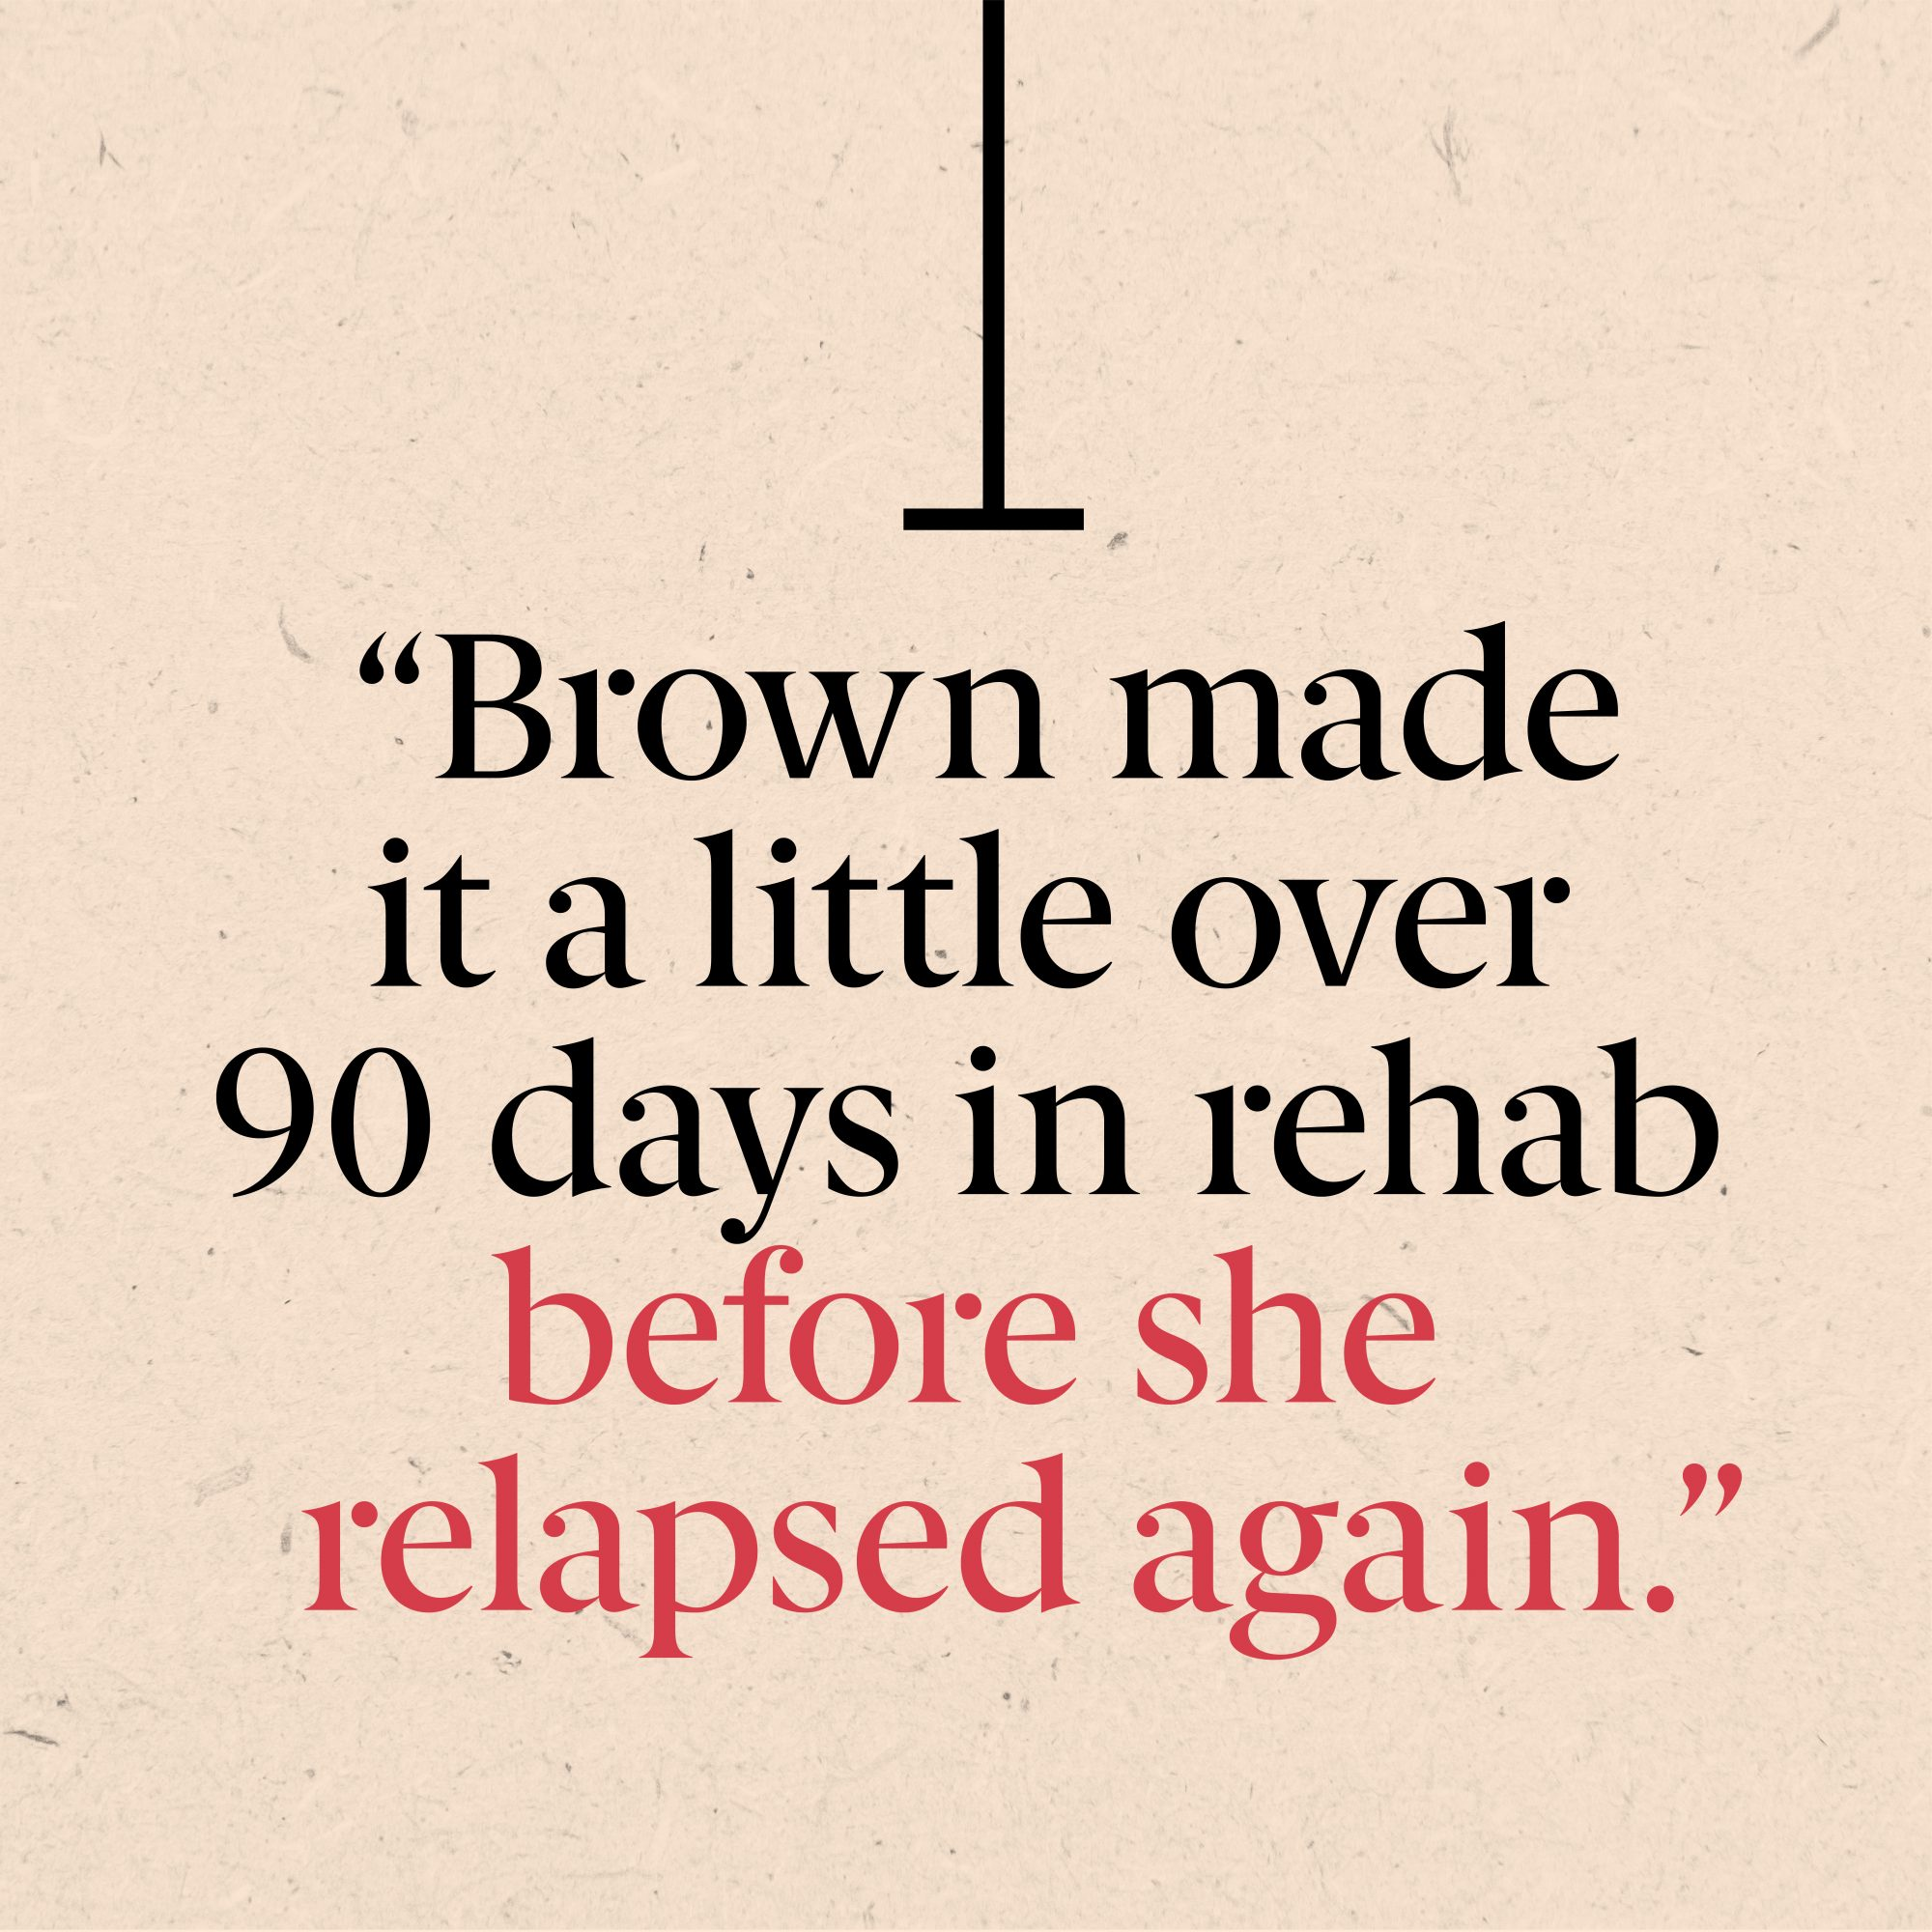 Brown made it a little over 90 days in rehab before she relapsed again